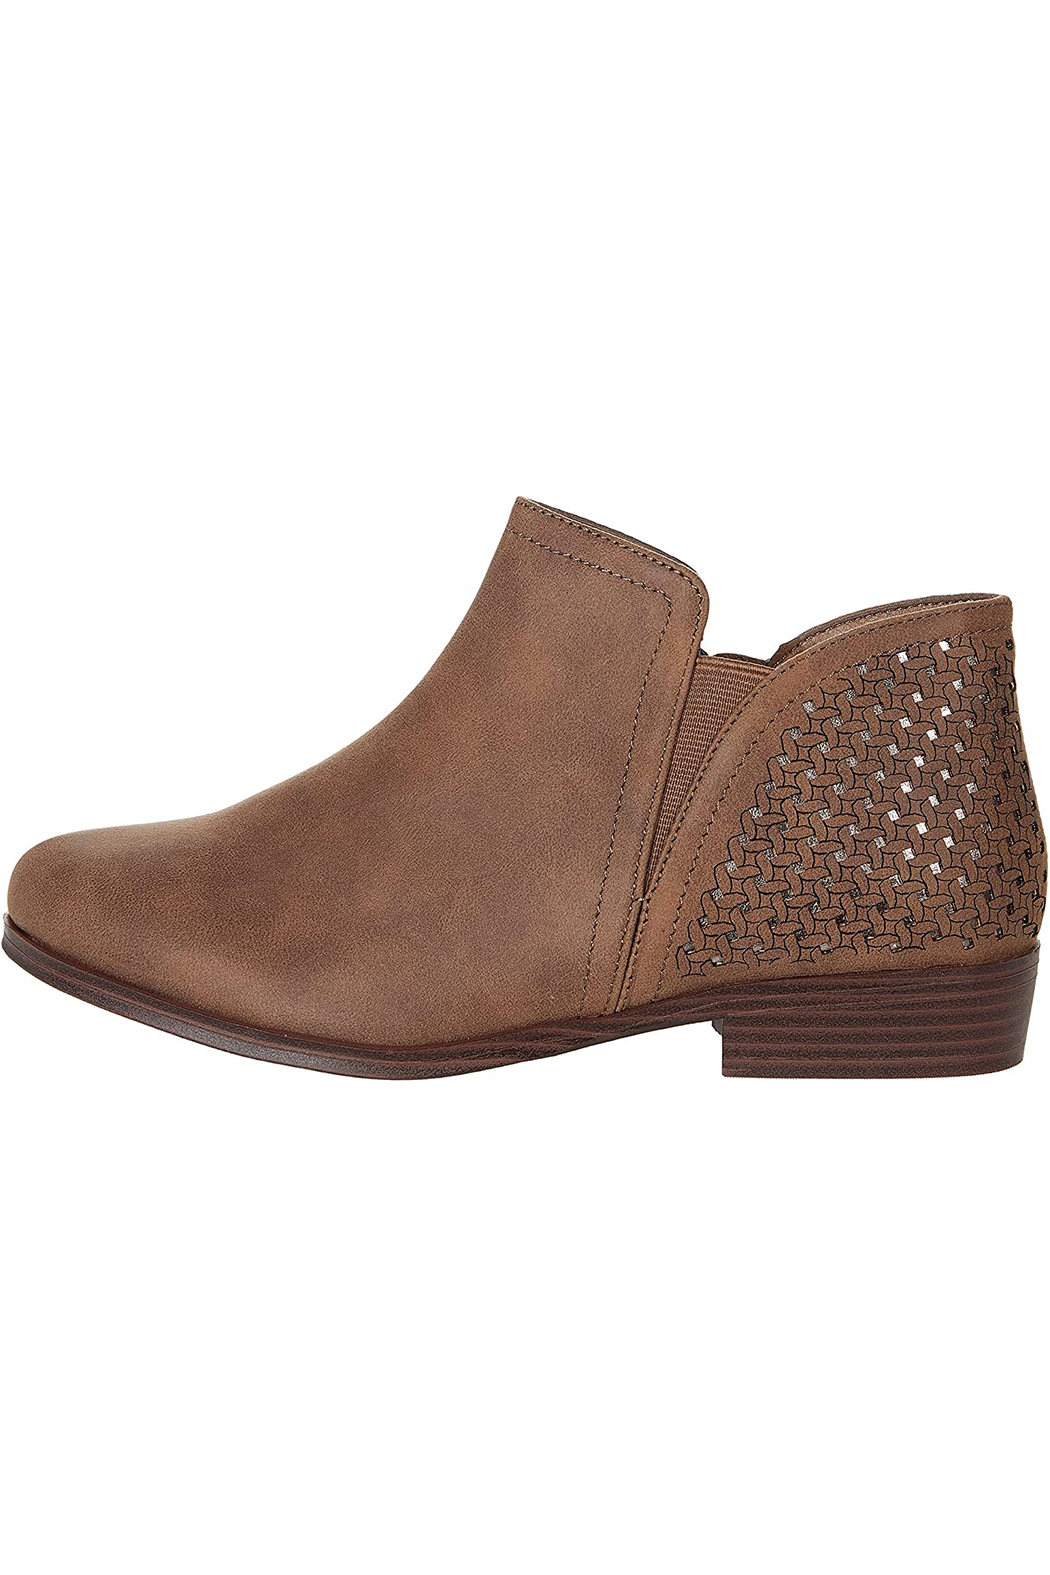 Mia Darlette Bootie - Front Full Image